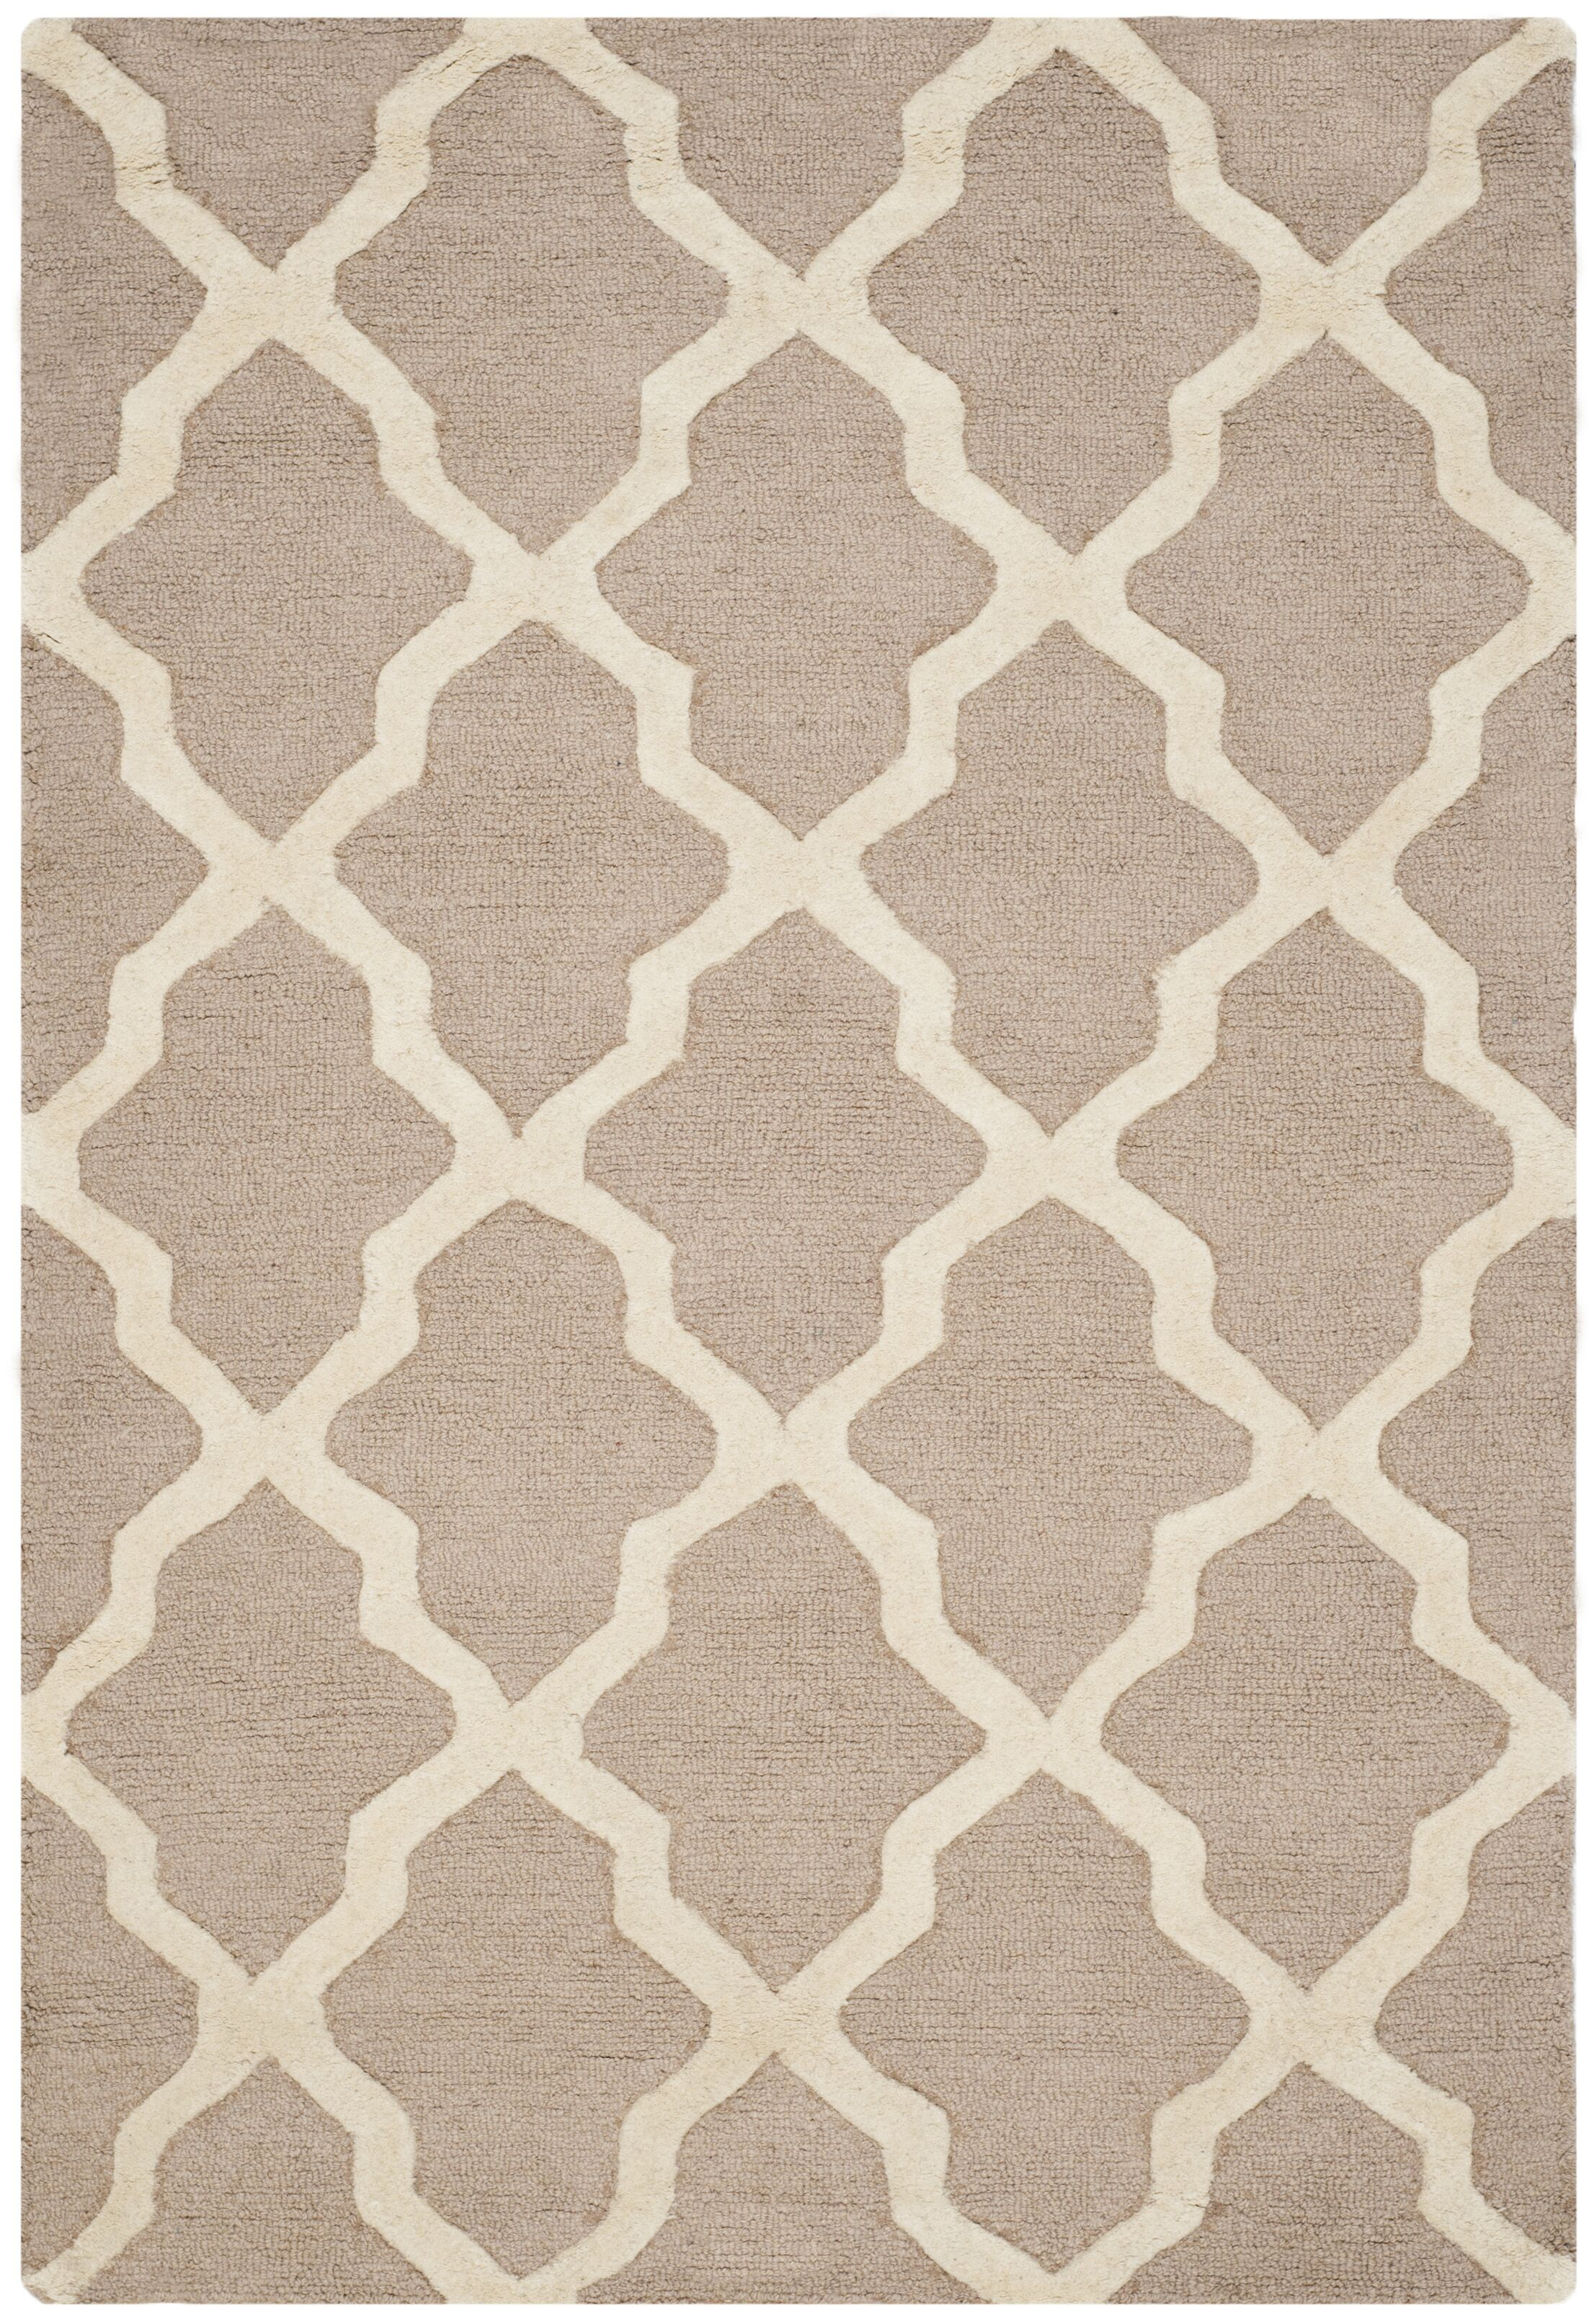 Kirschbaum Hand-Woven Wool Area Rug Rug Size: Rectangle 7'6